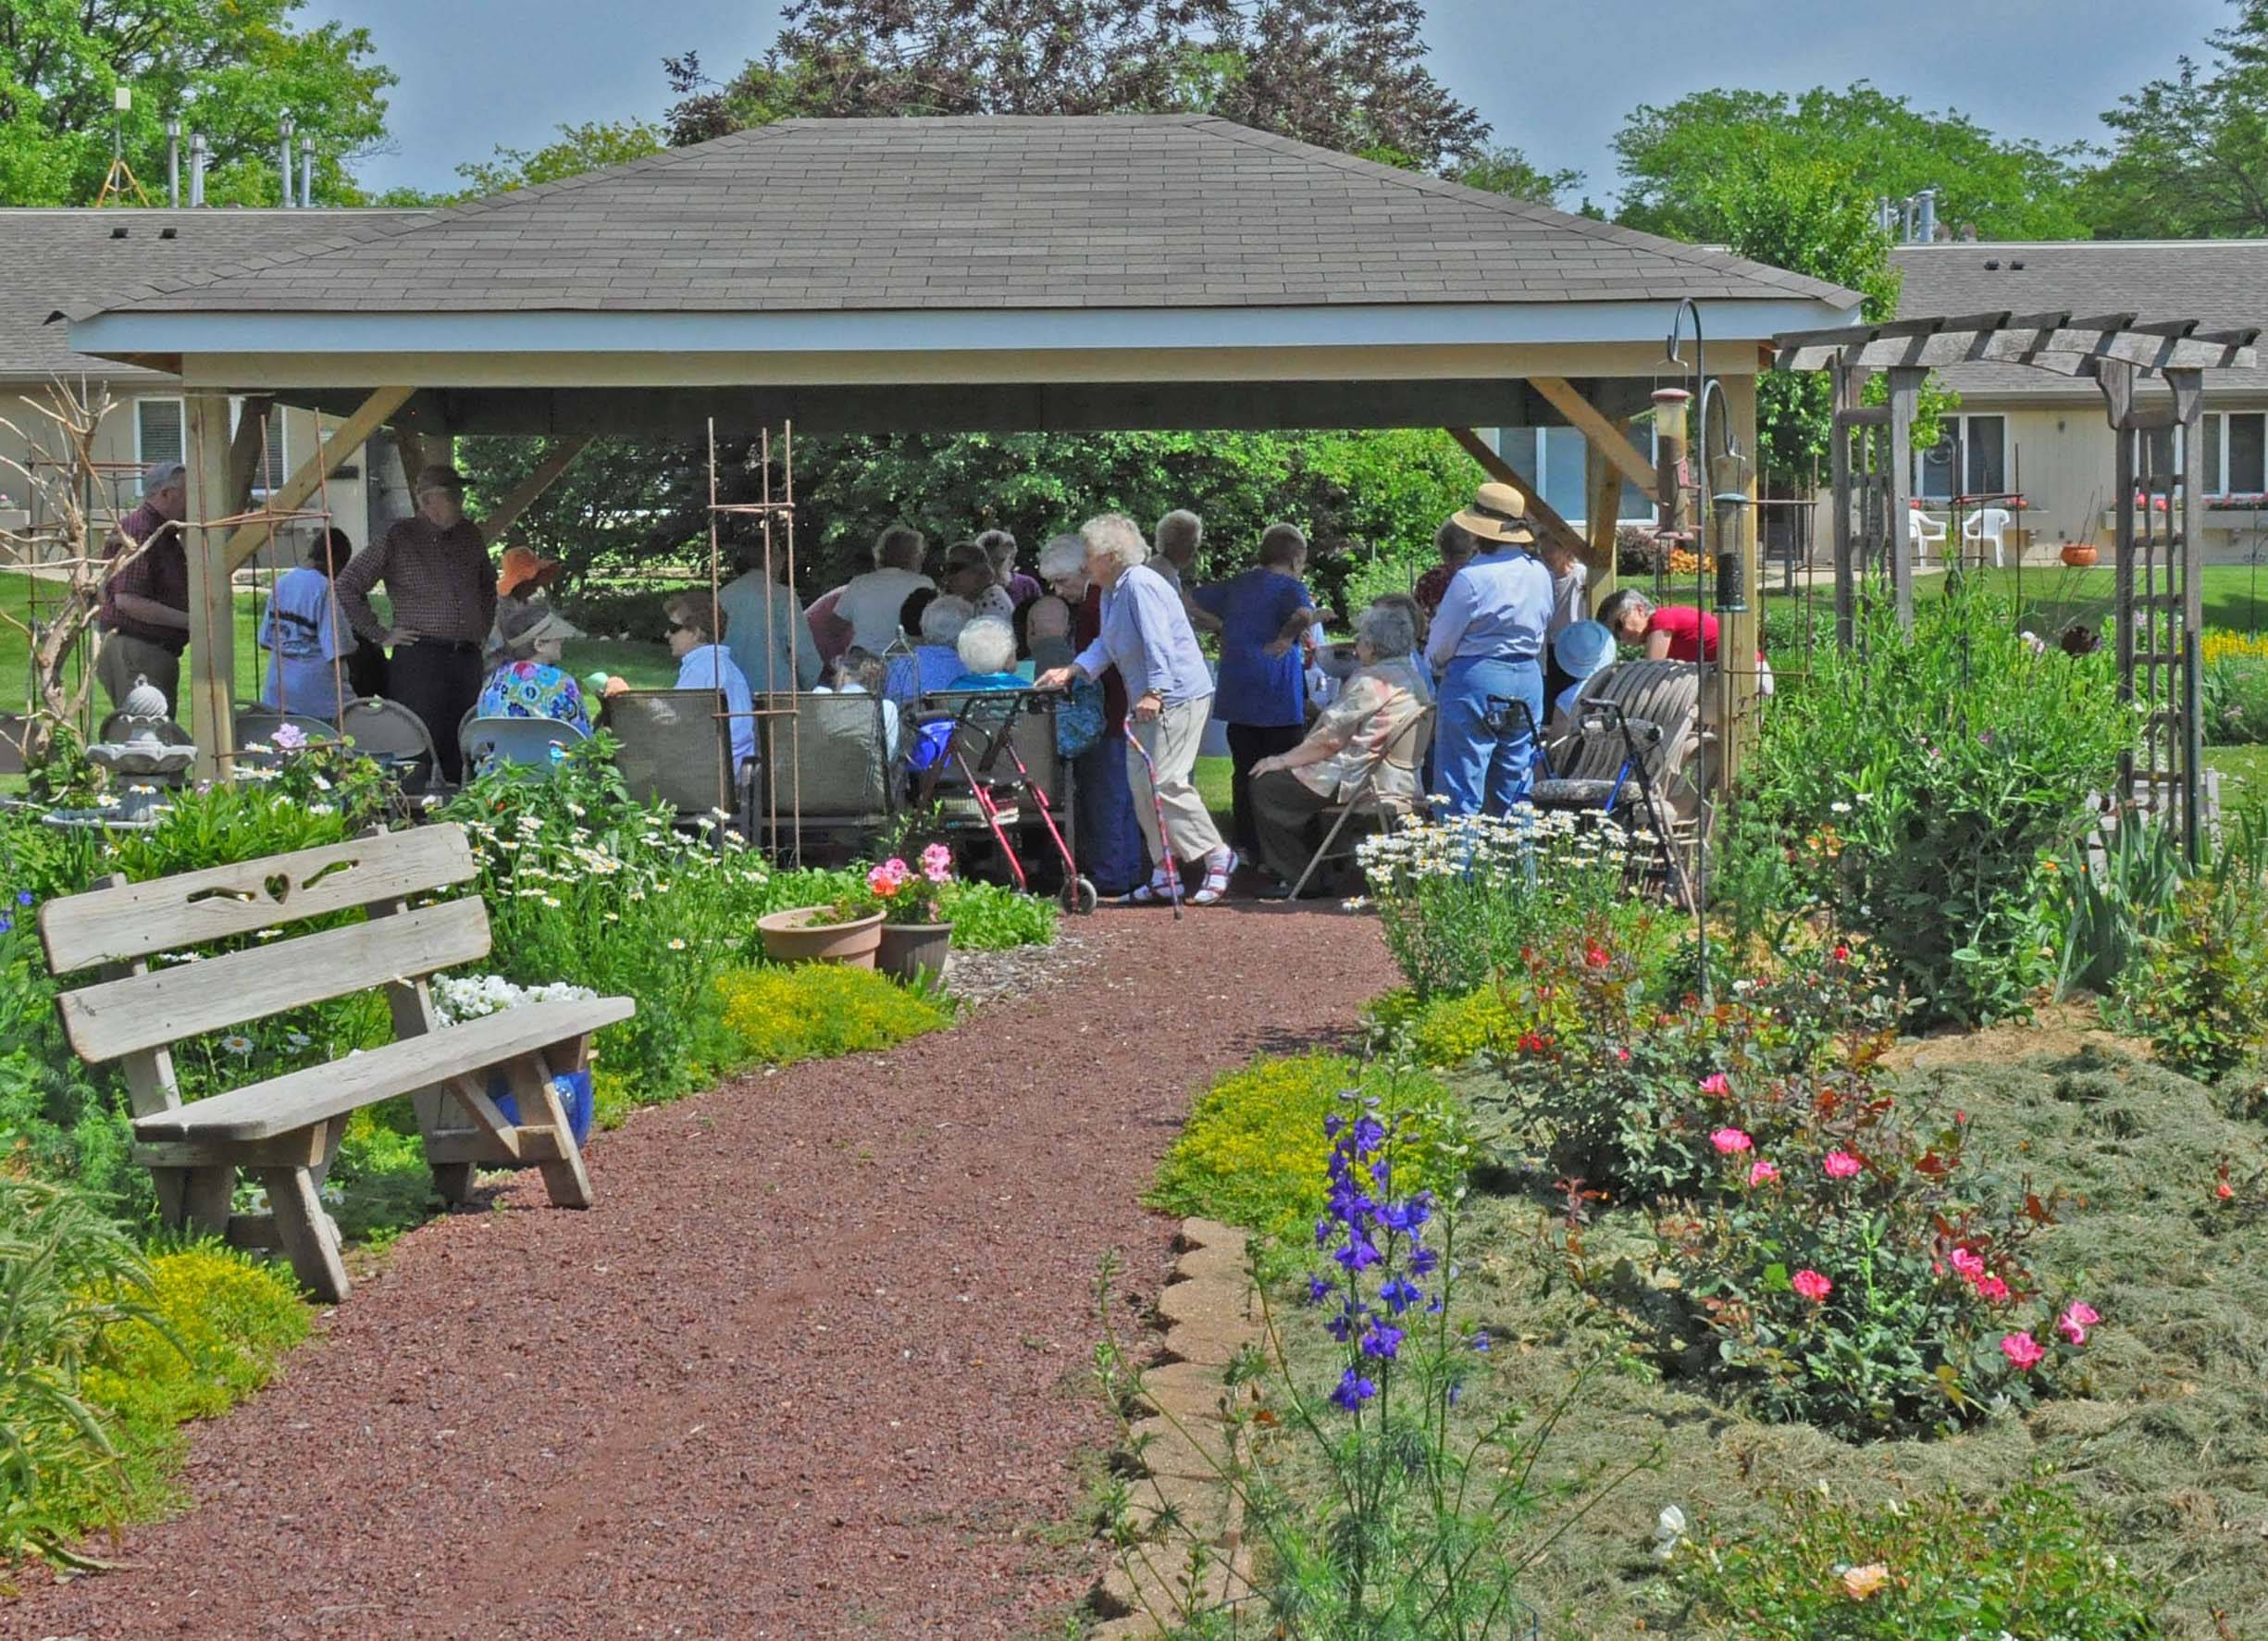 Guests assemble for the dedication of The Holmstad's new pavilion, a destination in the therapeutic garden, which was developed and is maintained by residents of the Batavia retirement community.